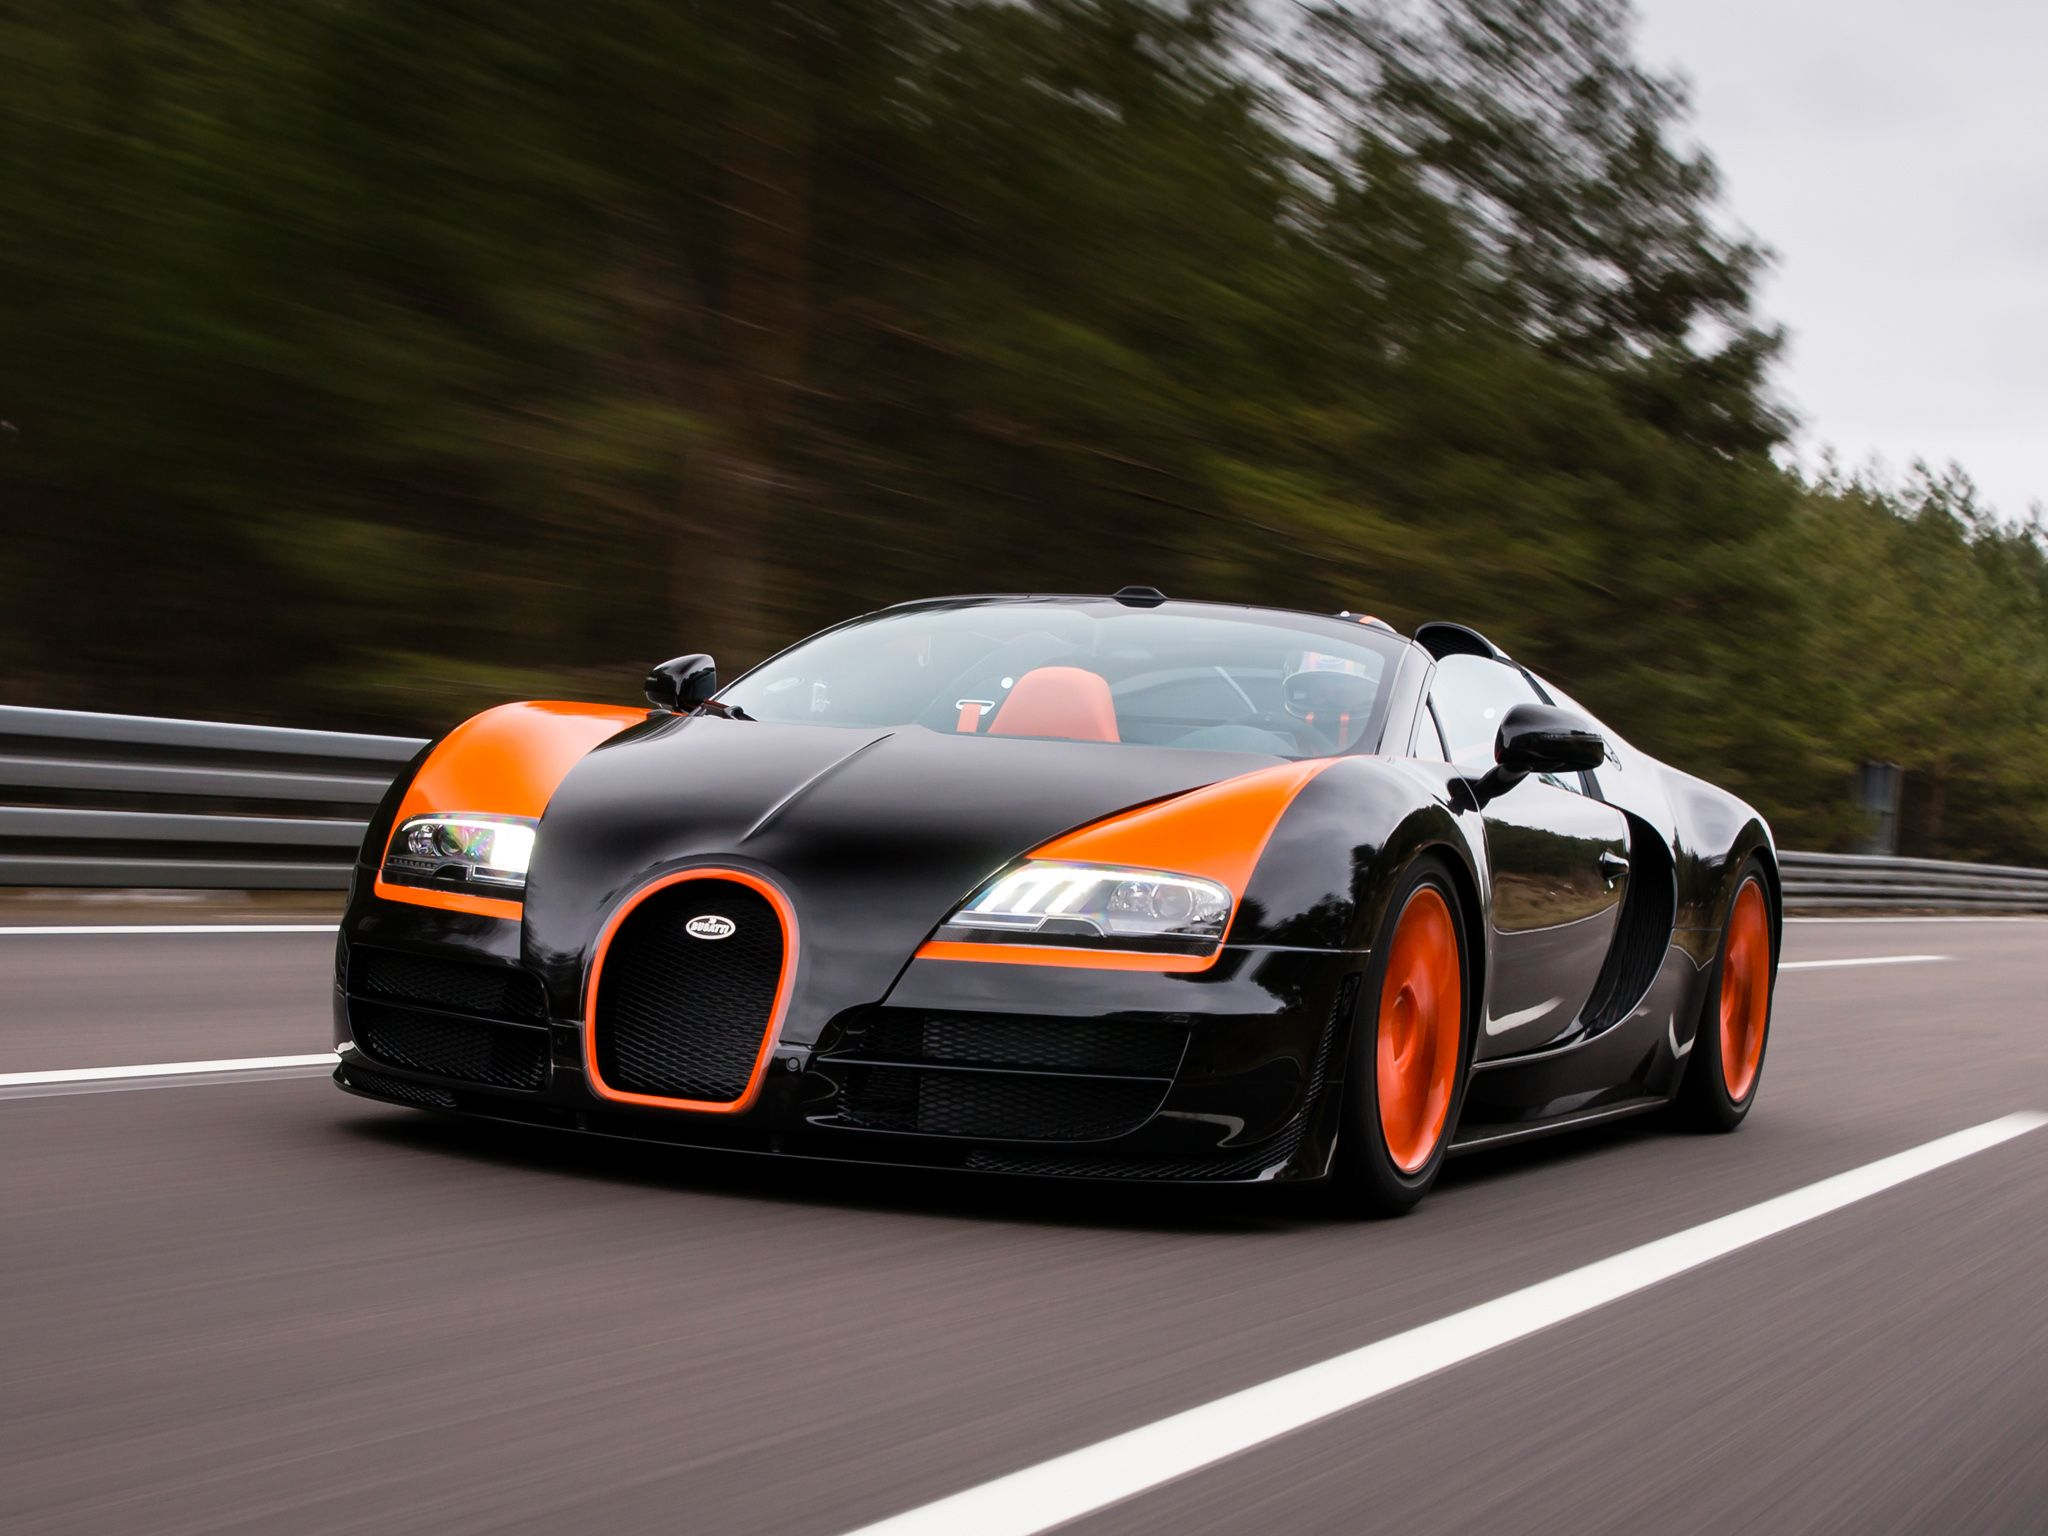 1000 images about bugatti veyron wallpaper on pinterest super sport cars and v12 engine - Bugatti Veyron Super Sport 2013 Wallpaper